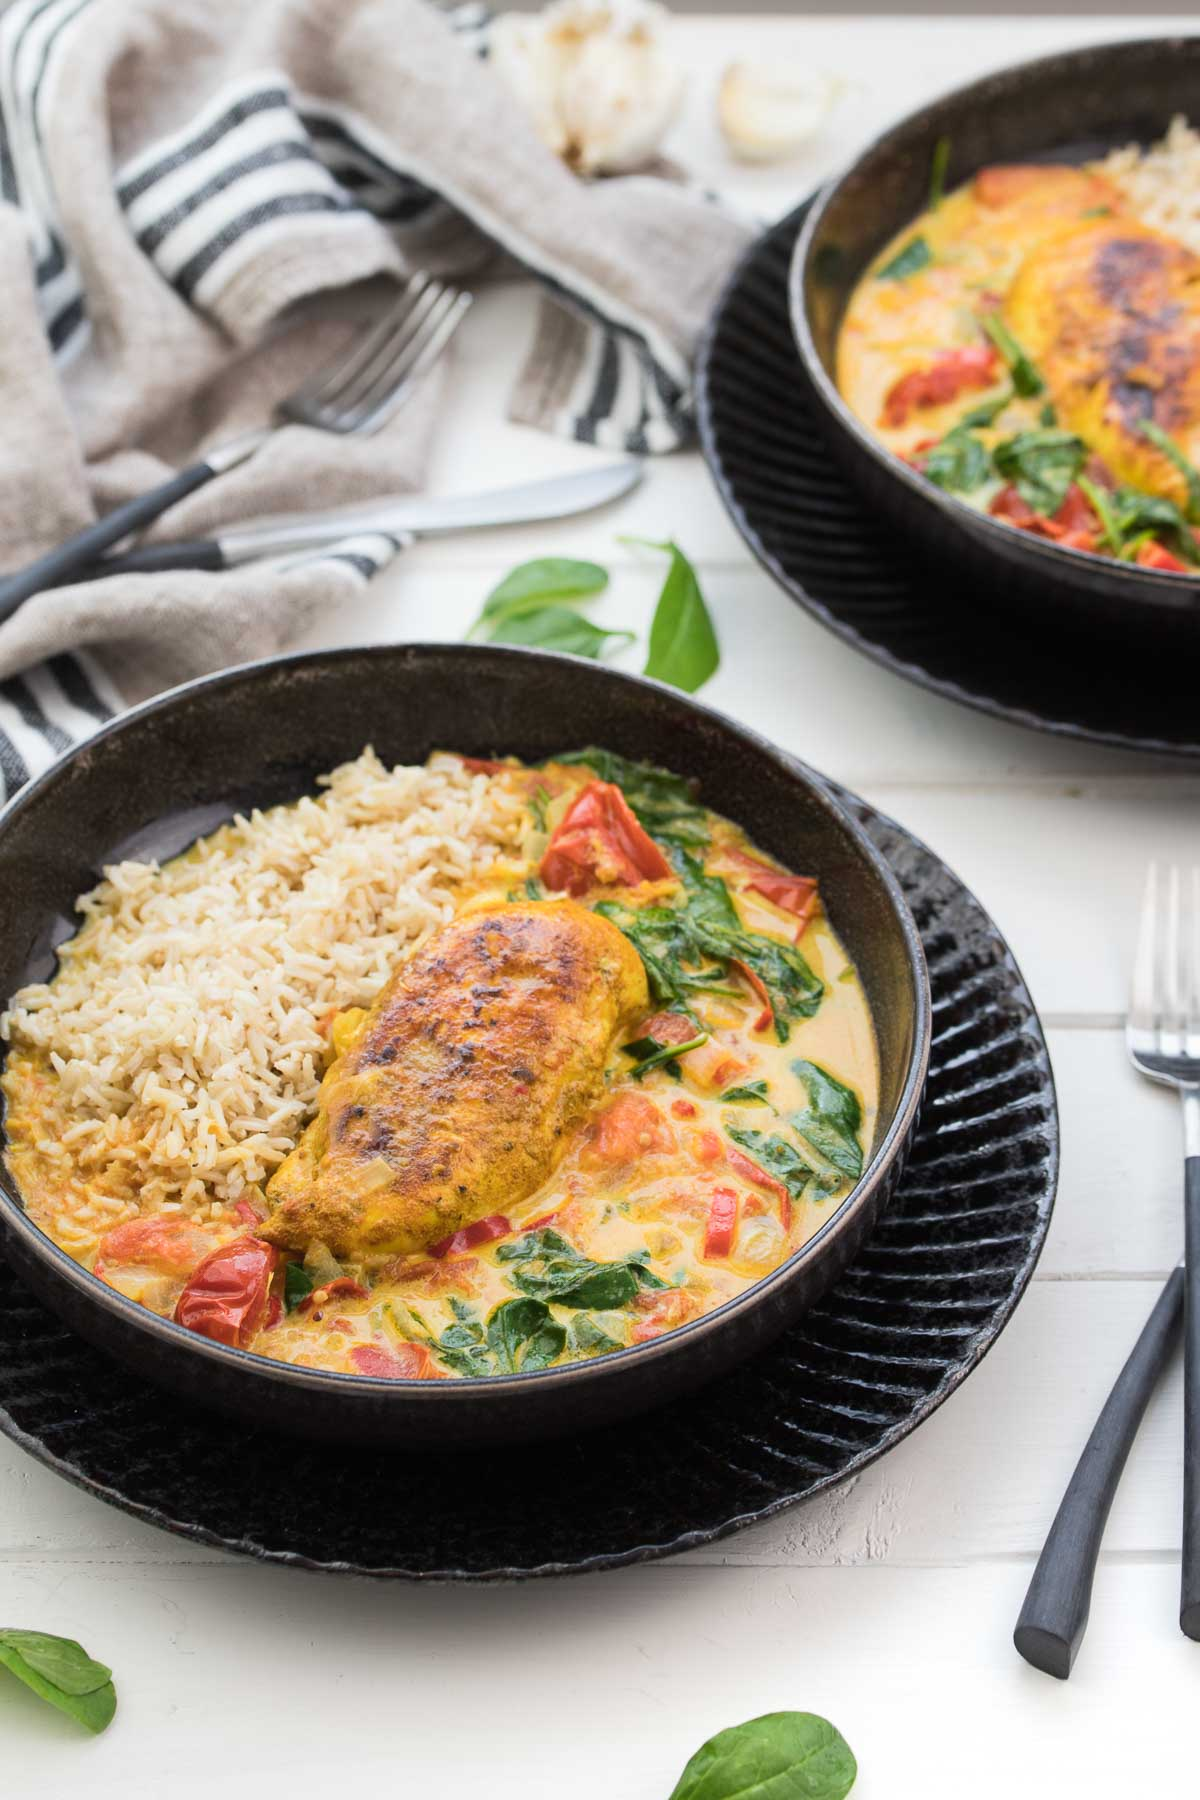 Spicy Coconut Chicken Skillet with Tomatoes and Spinach